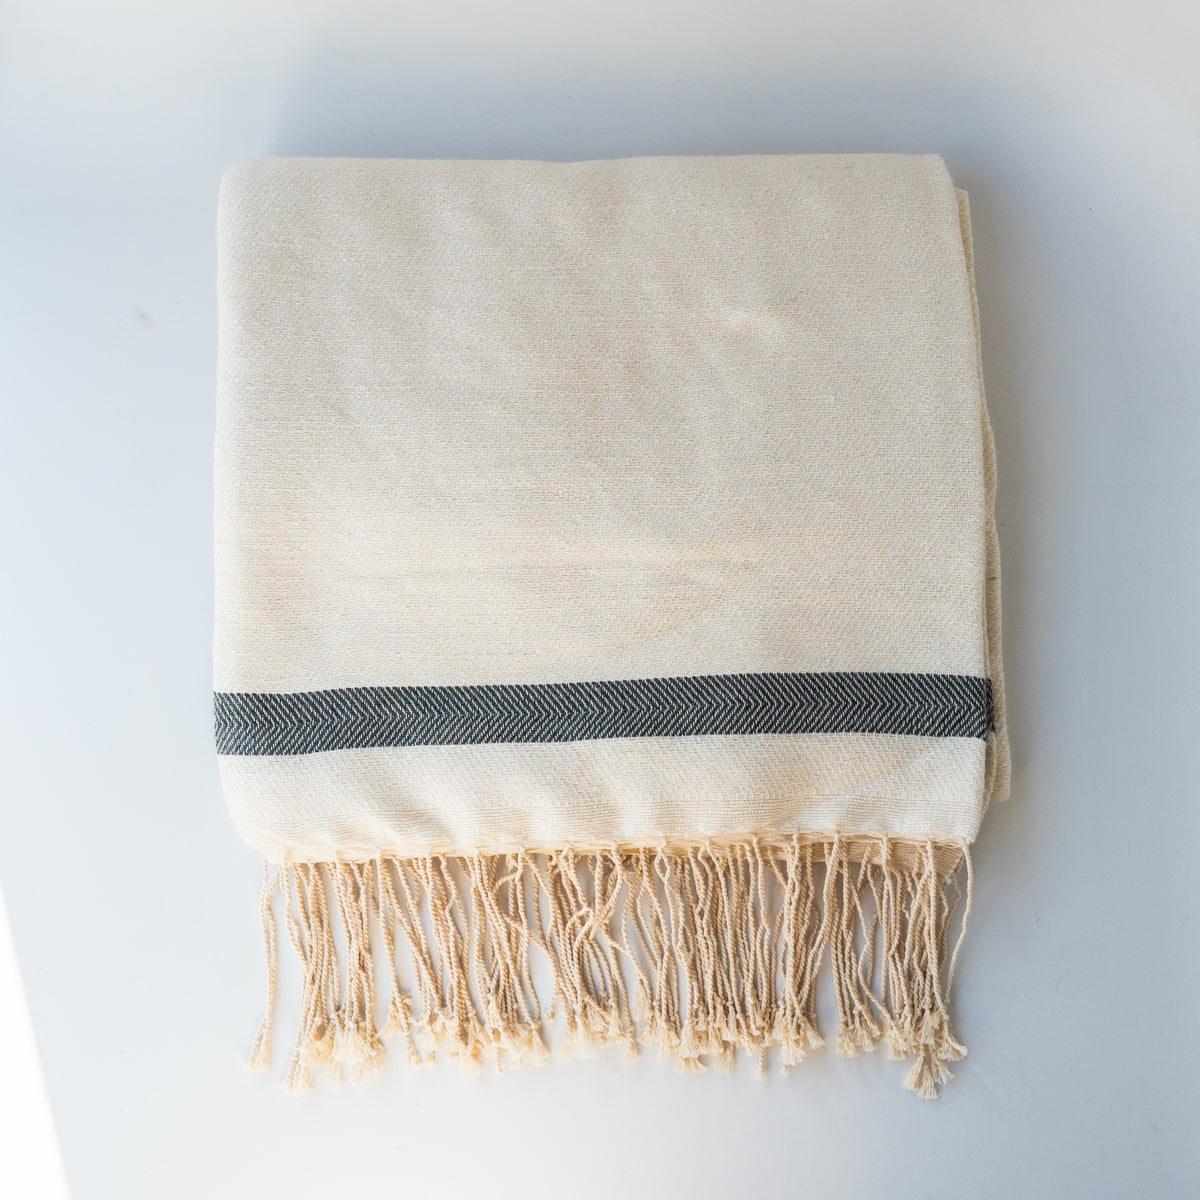 Moroccan Throw Blanket - Creme